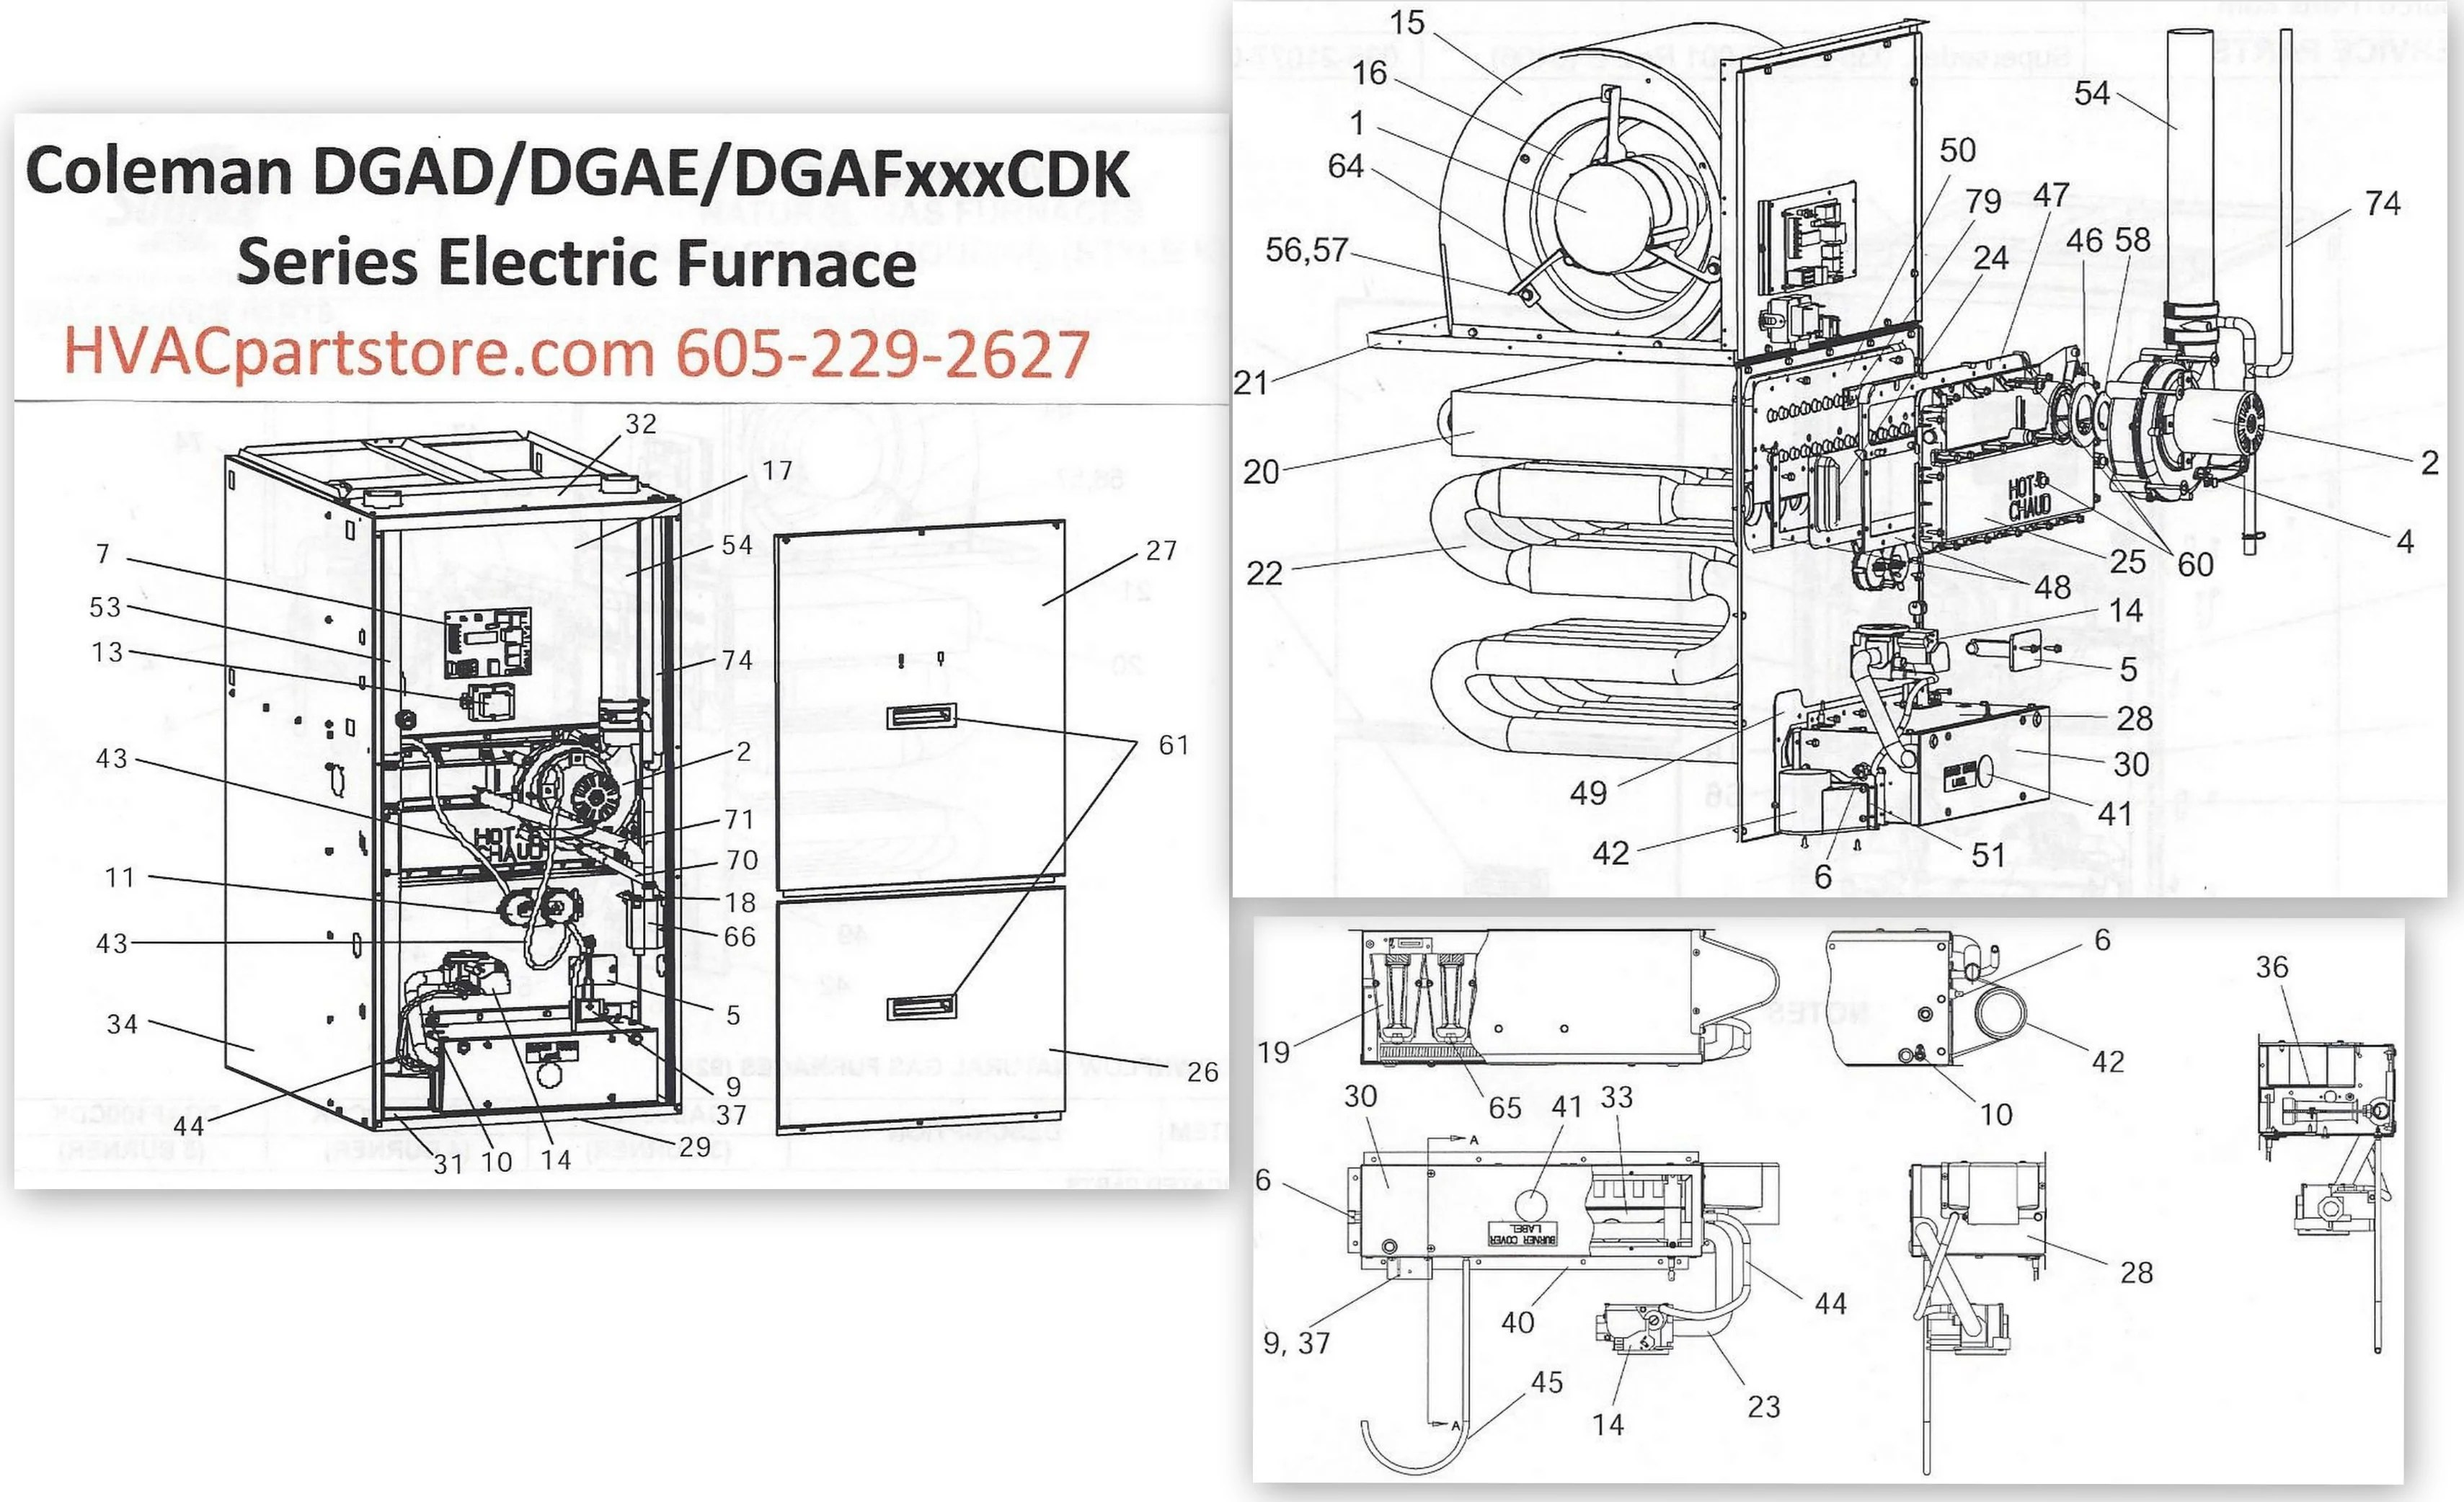 DGAE080CDK Coleman Gas Furnace Parts – HVACpartstore